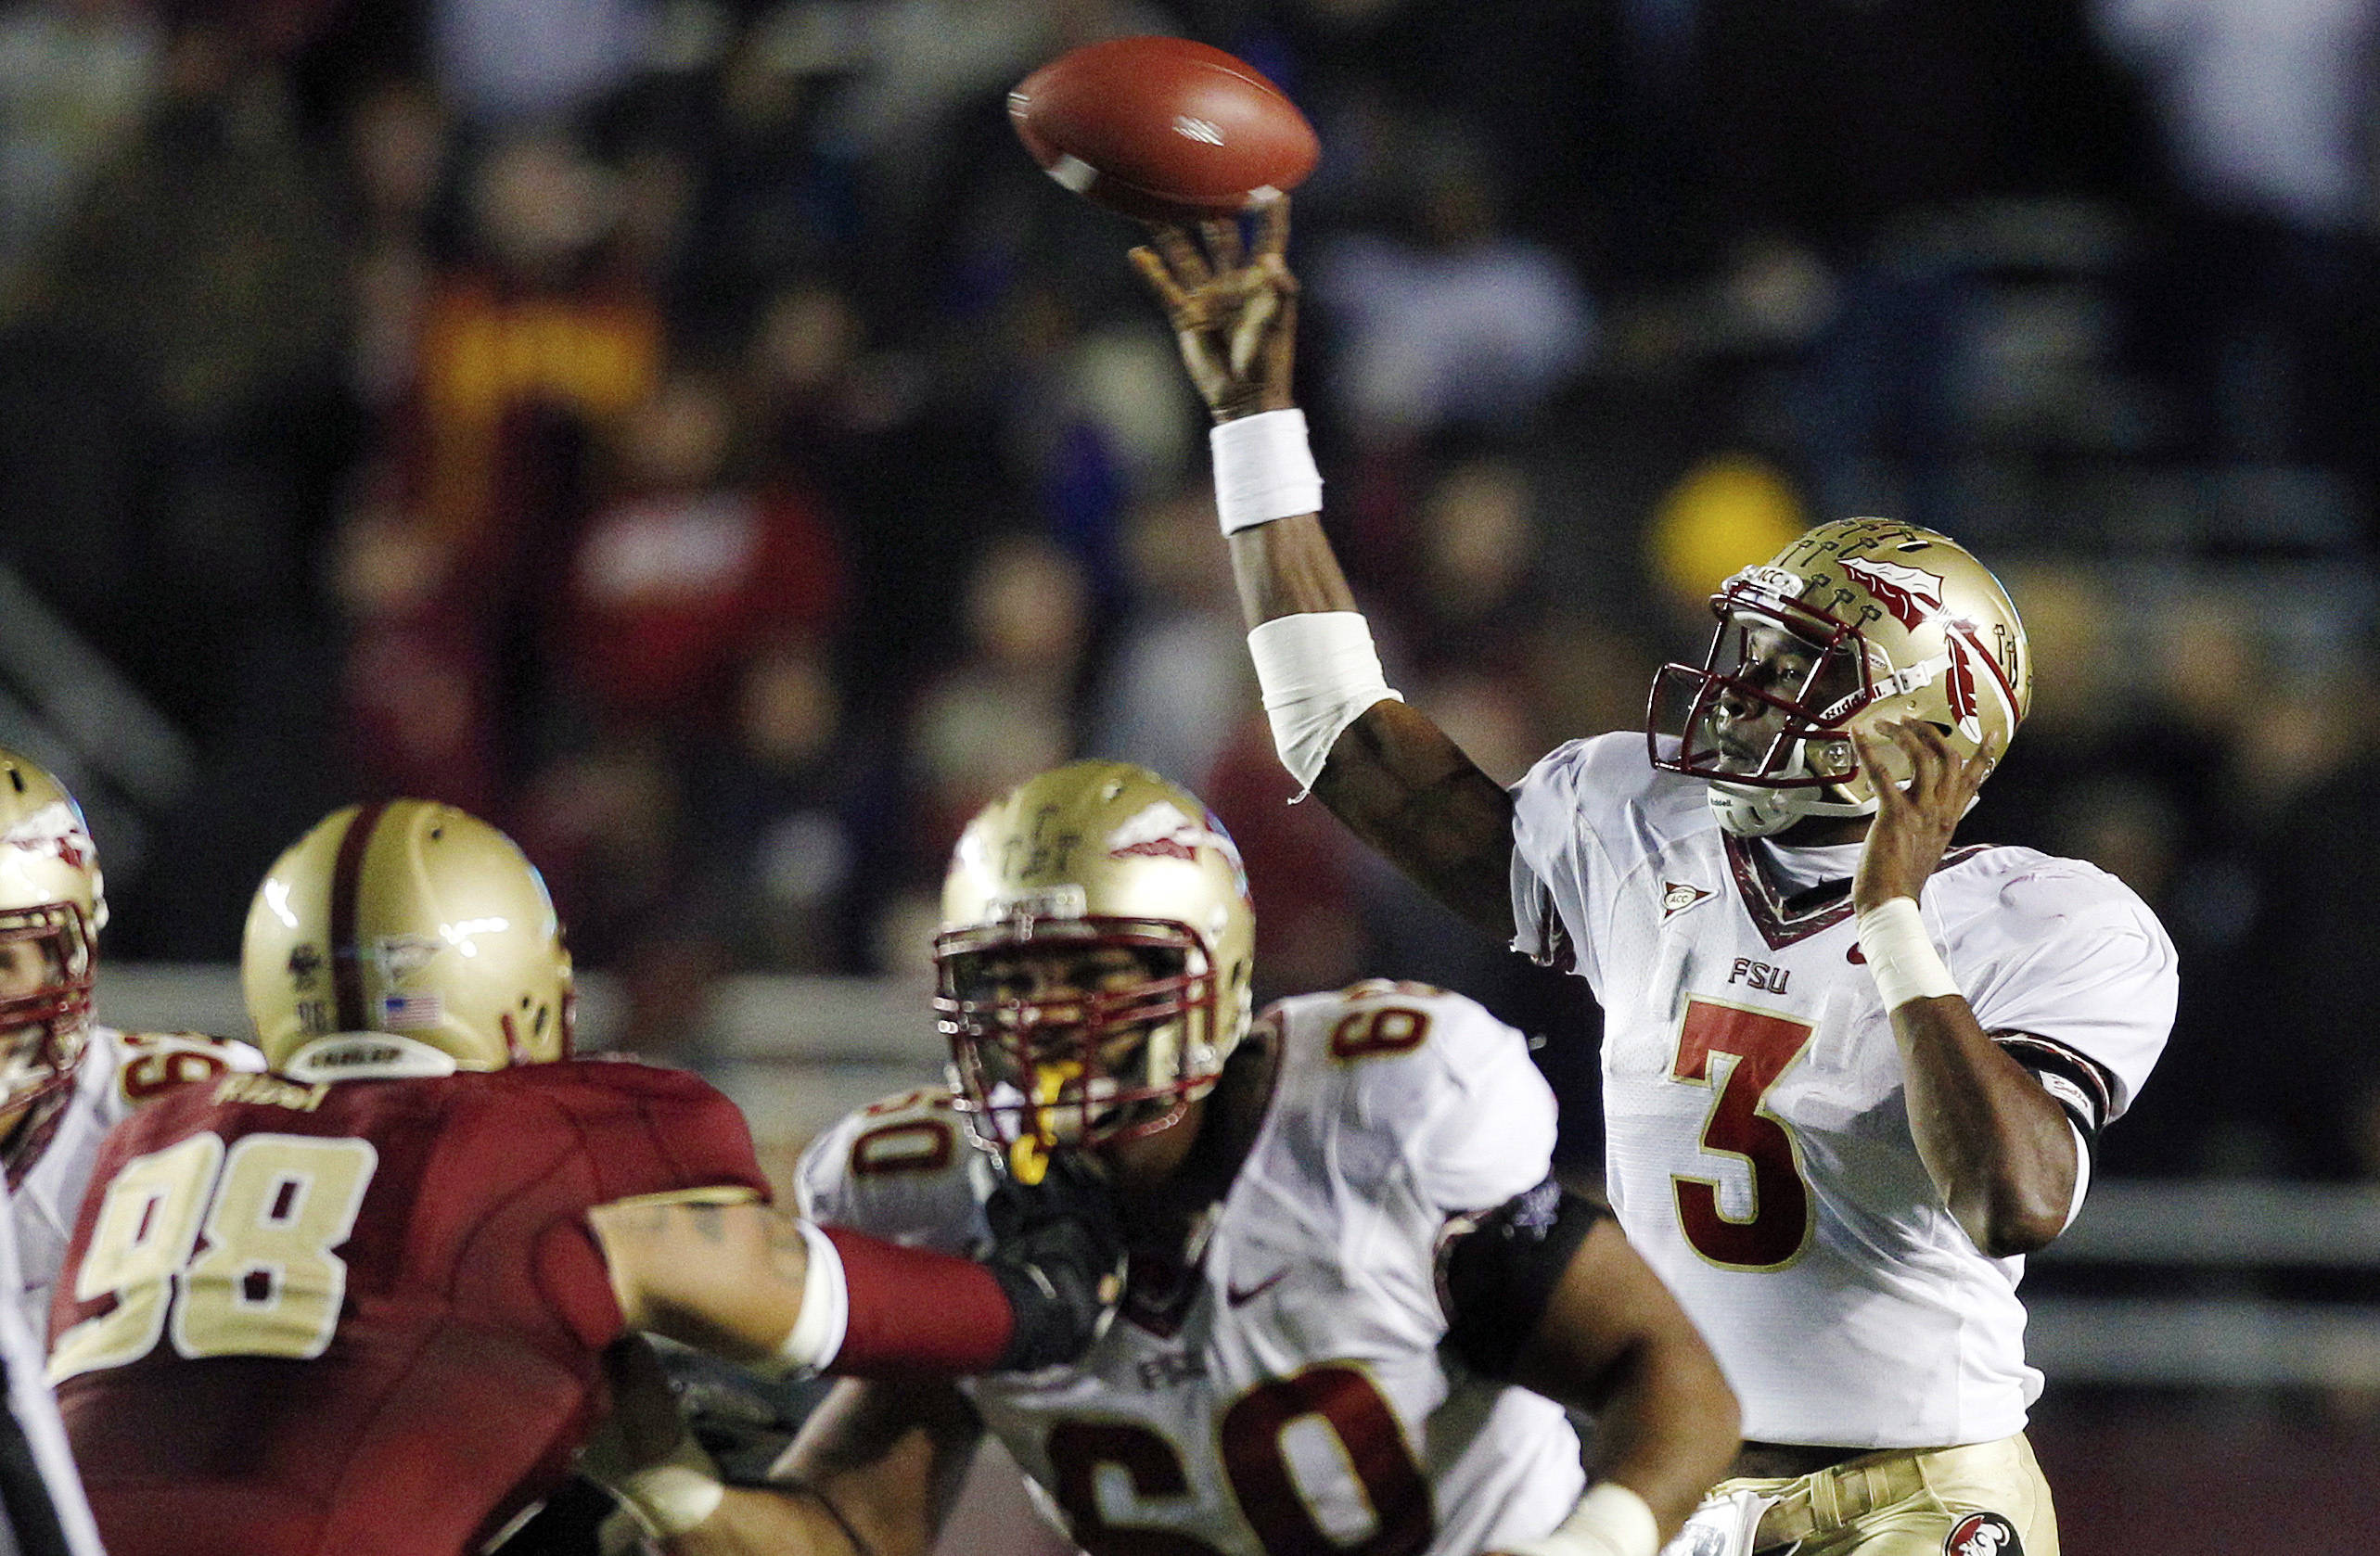 Florida State quarterback E.J. Manuel passes against Boston College during the second half. (AP Photo/Charles Krupa)